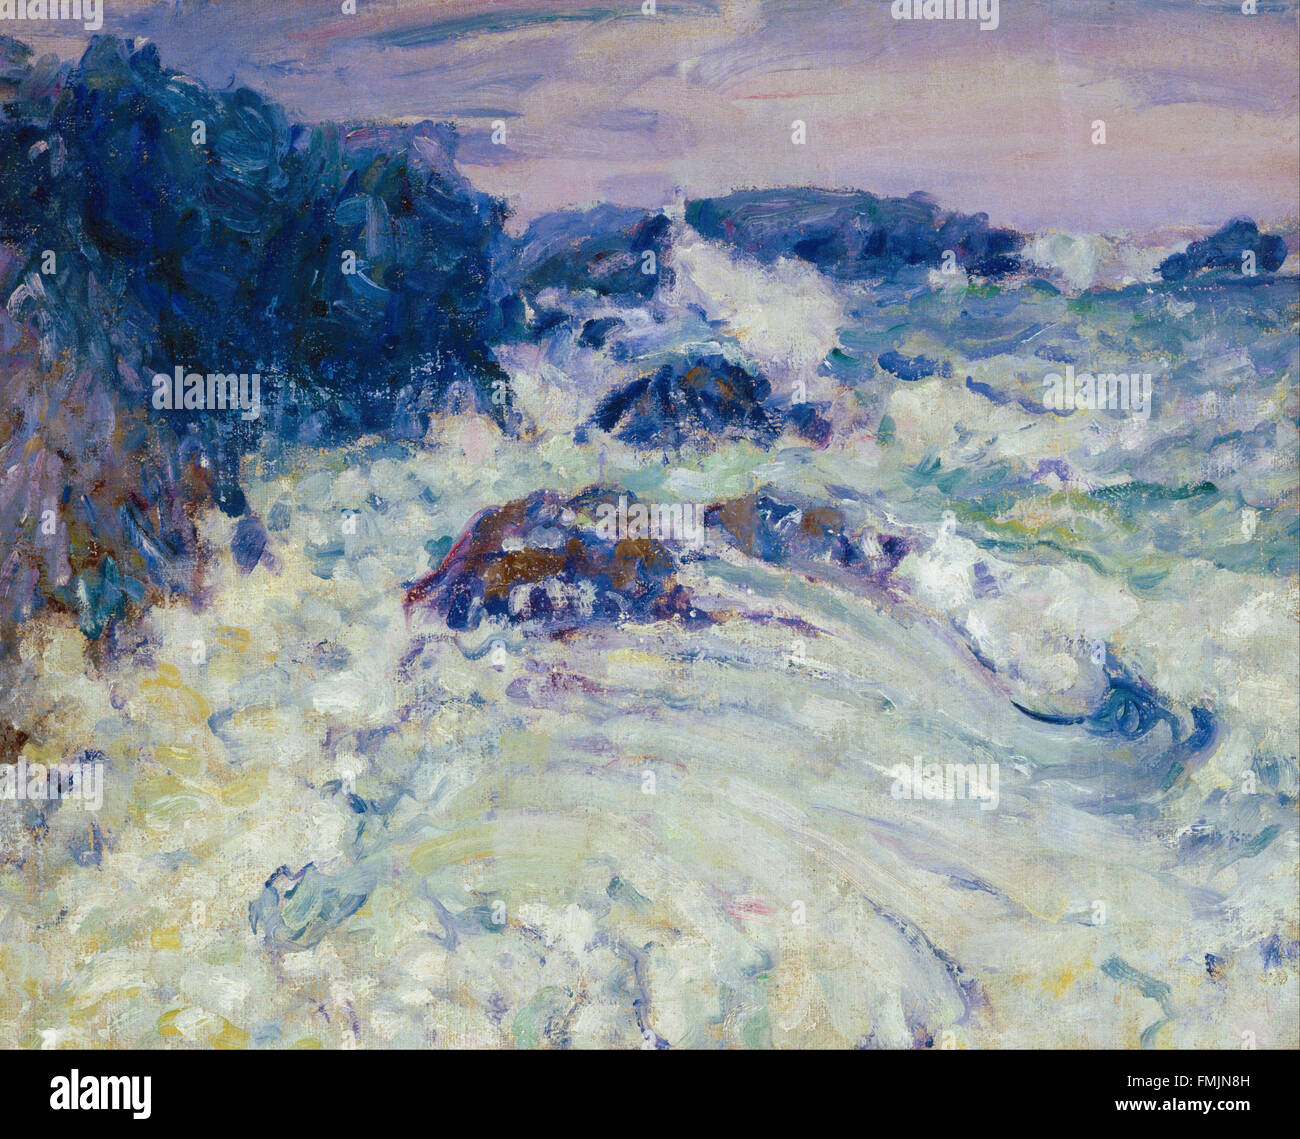 John Peter Russell - Rough sea, Morestil - Stock Image